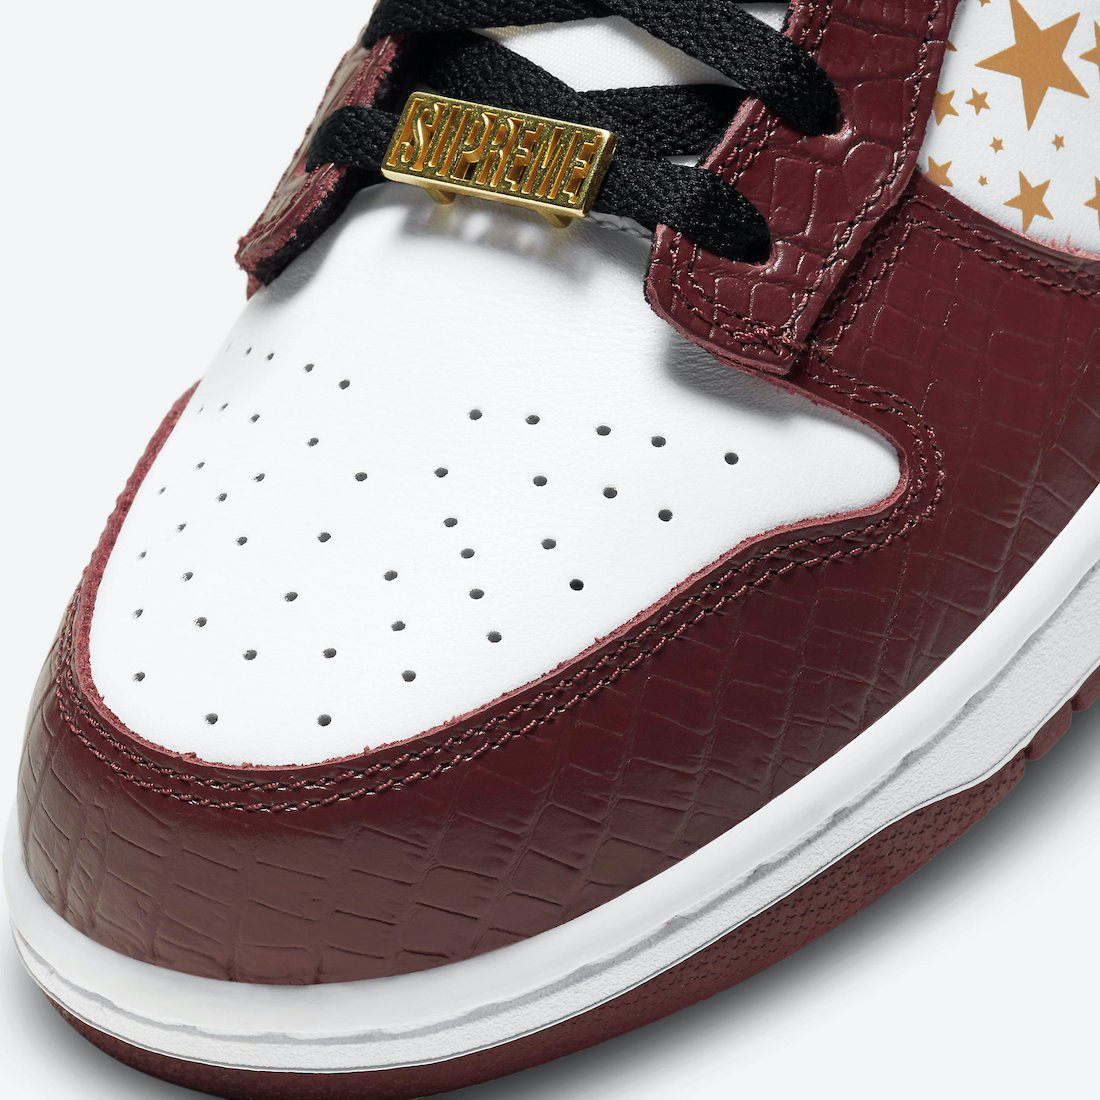 Supreme Nike SB Dunk Low Barkroot Brown DH3228-103 Release Info Price